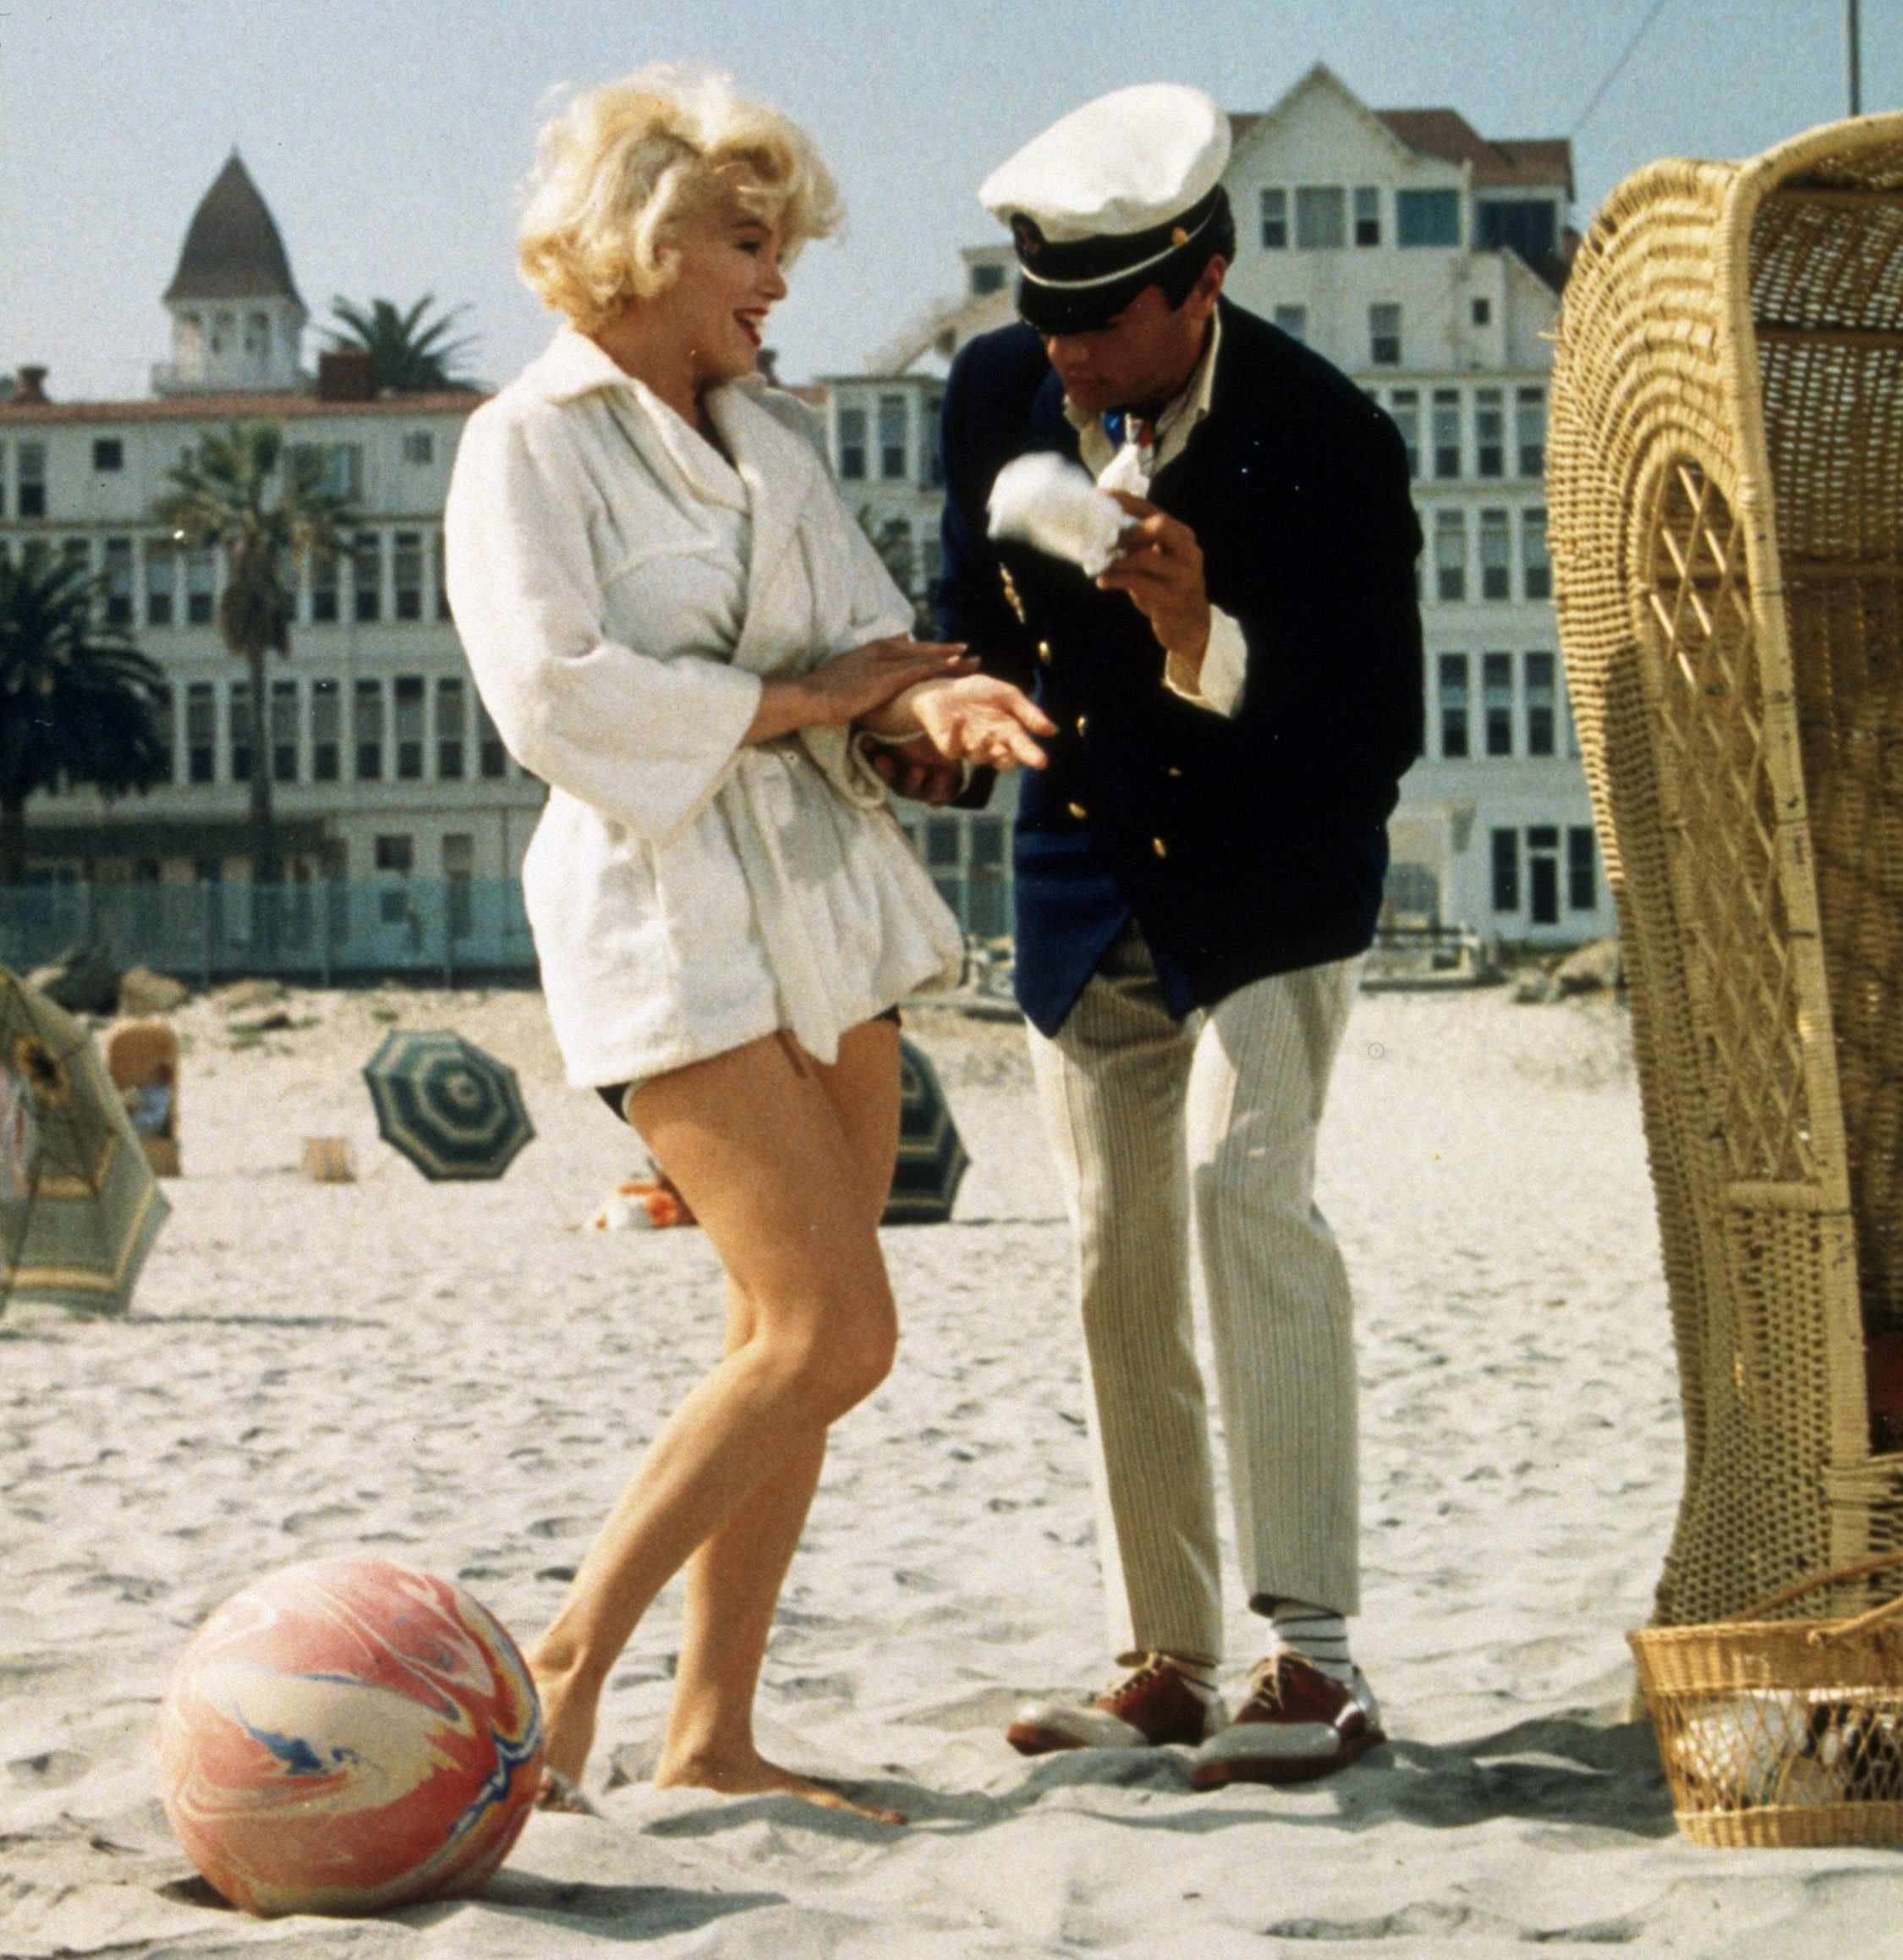 Editorial use only Mandatory Credit: Photo by Snap/Shutterstock (390878gr) FILM STILLS OF 'SOME LIKE IT HOT', MARILYN MONROE AND TONY CURTIS - 1959 Various